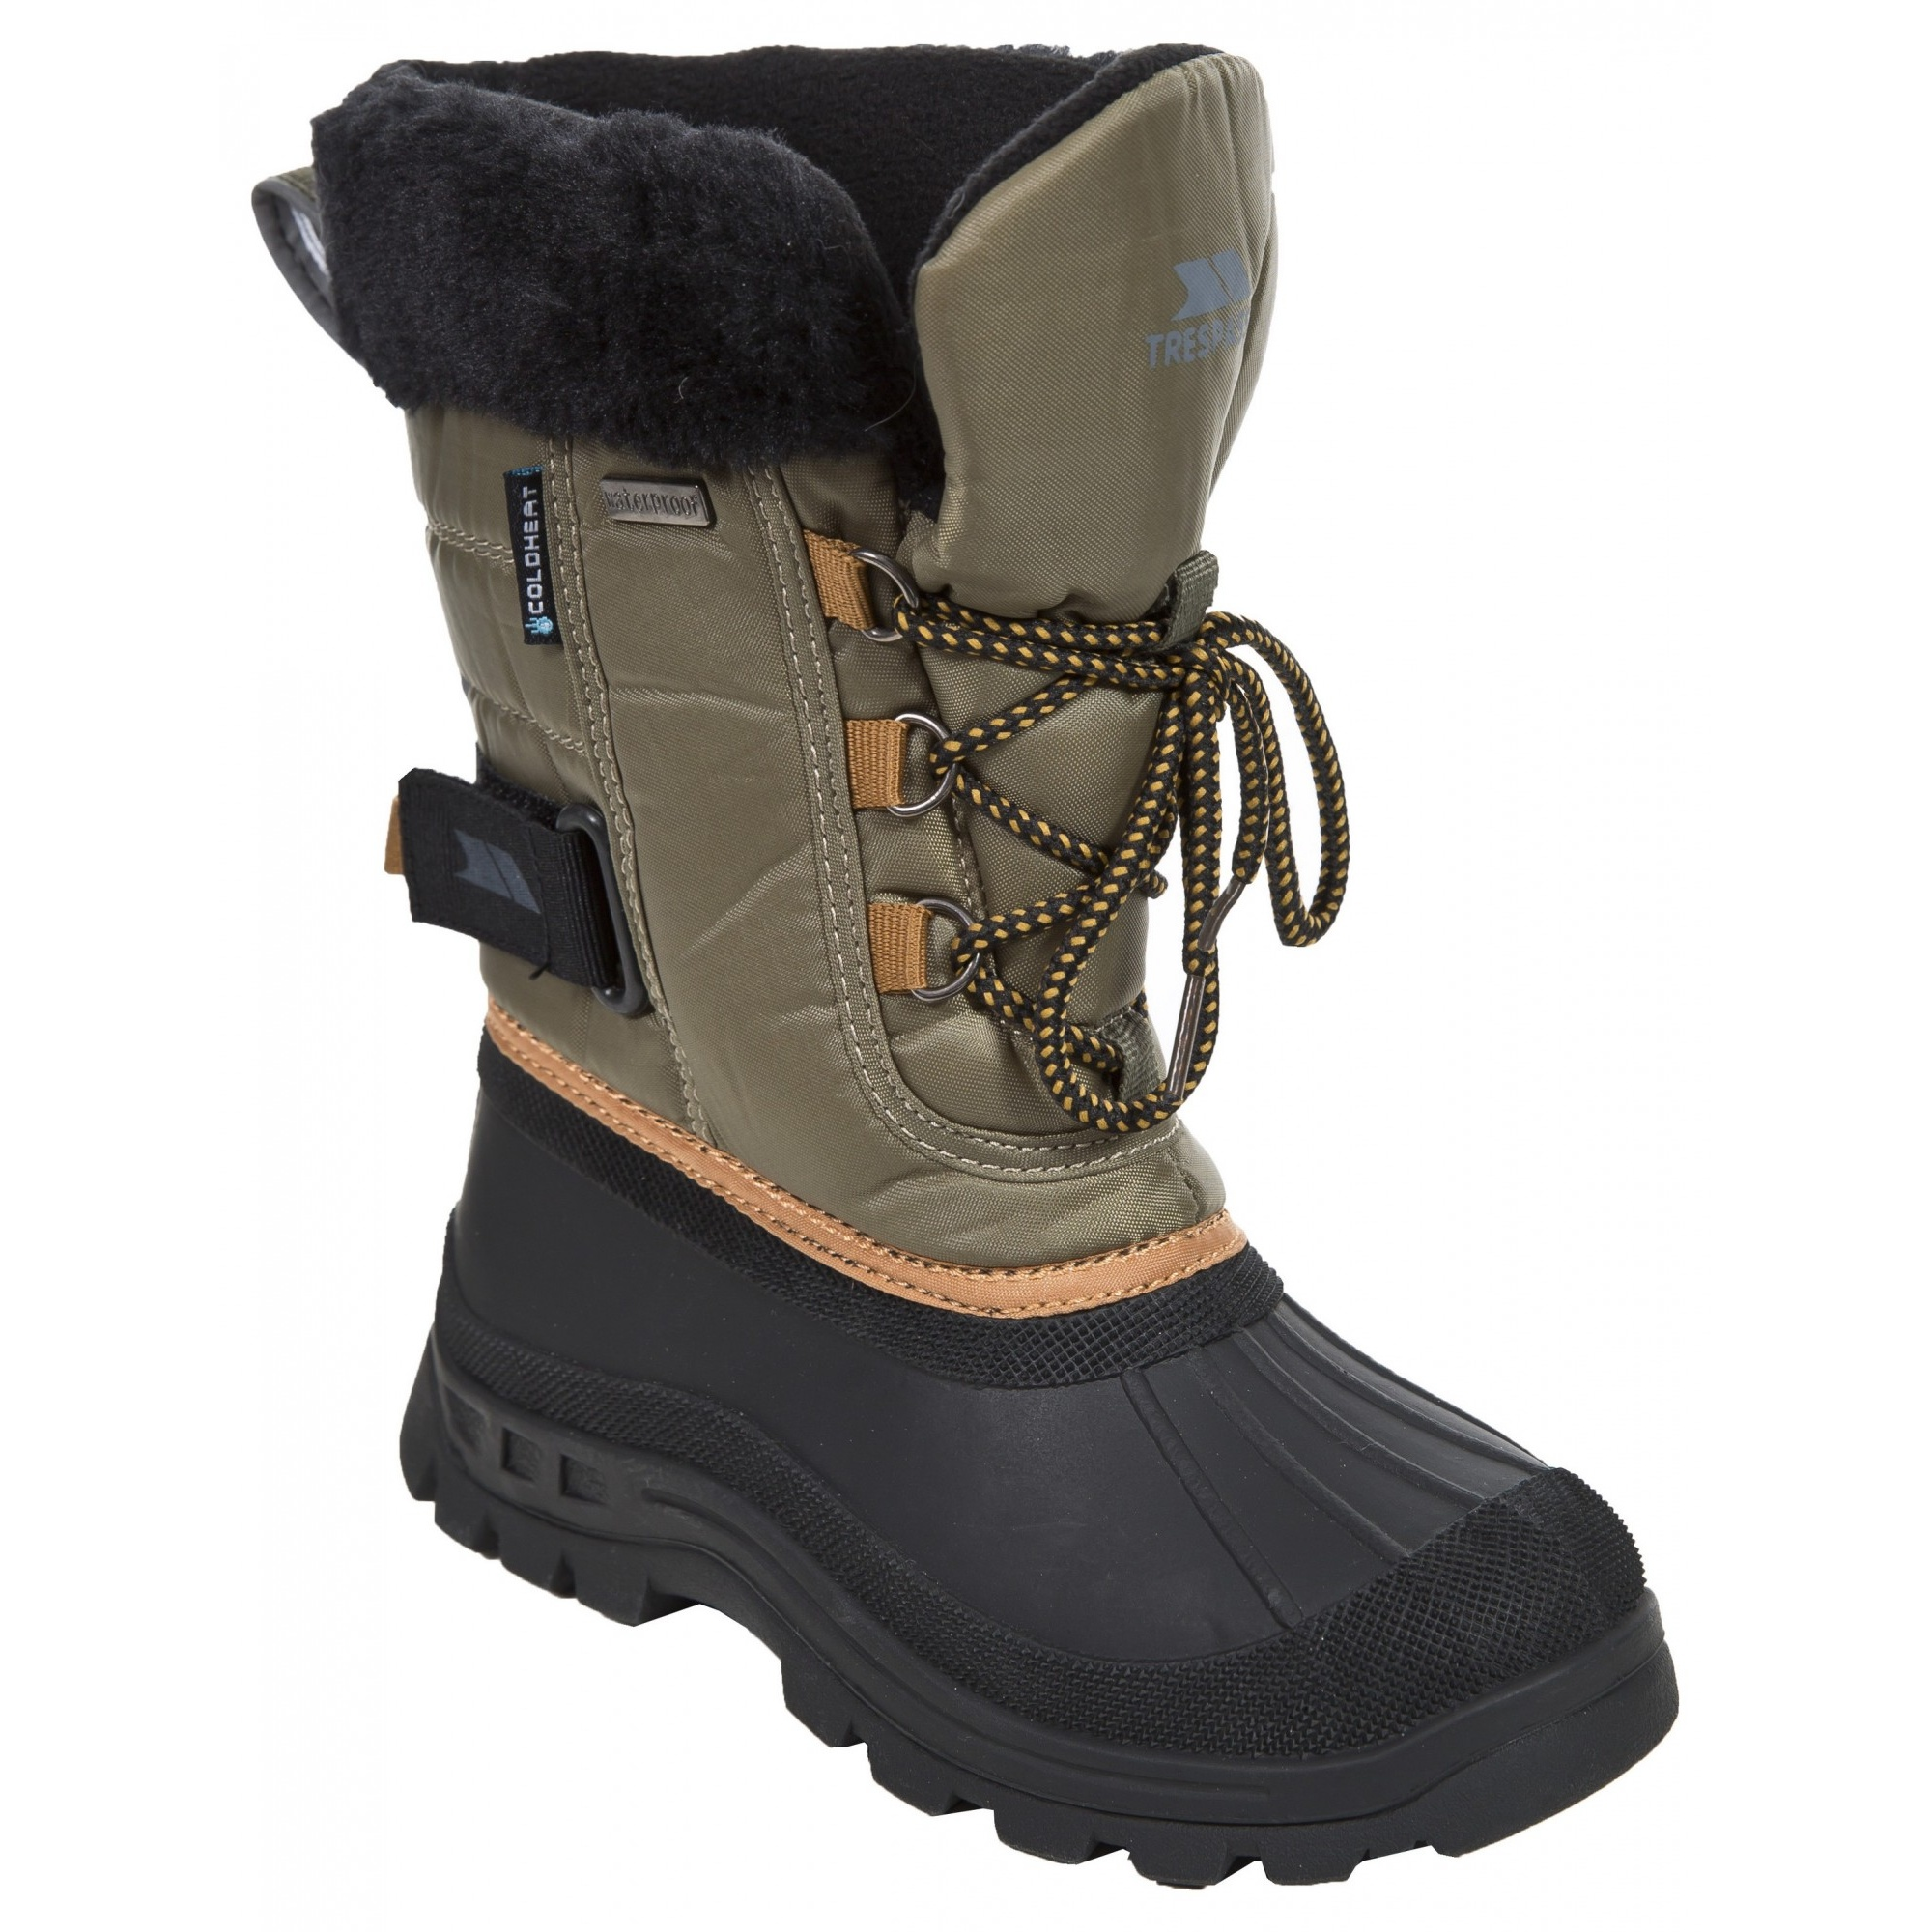 Snow Boots Size 10 1ZGhKMzD